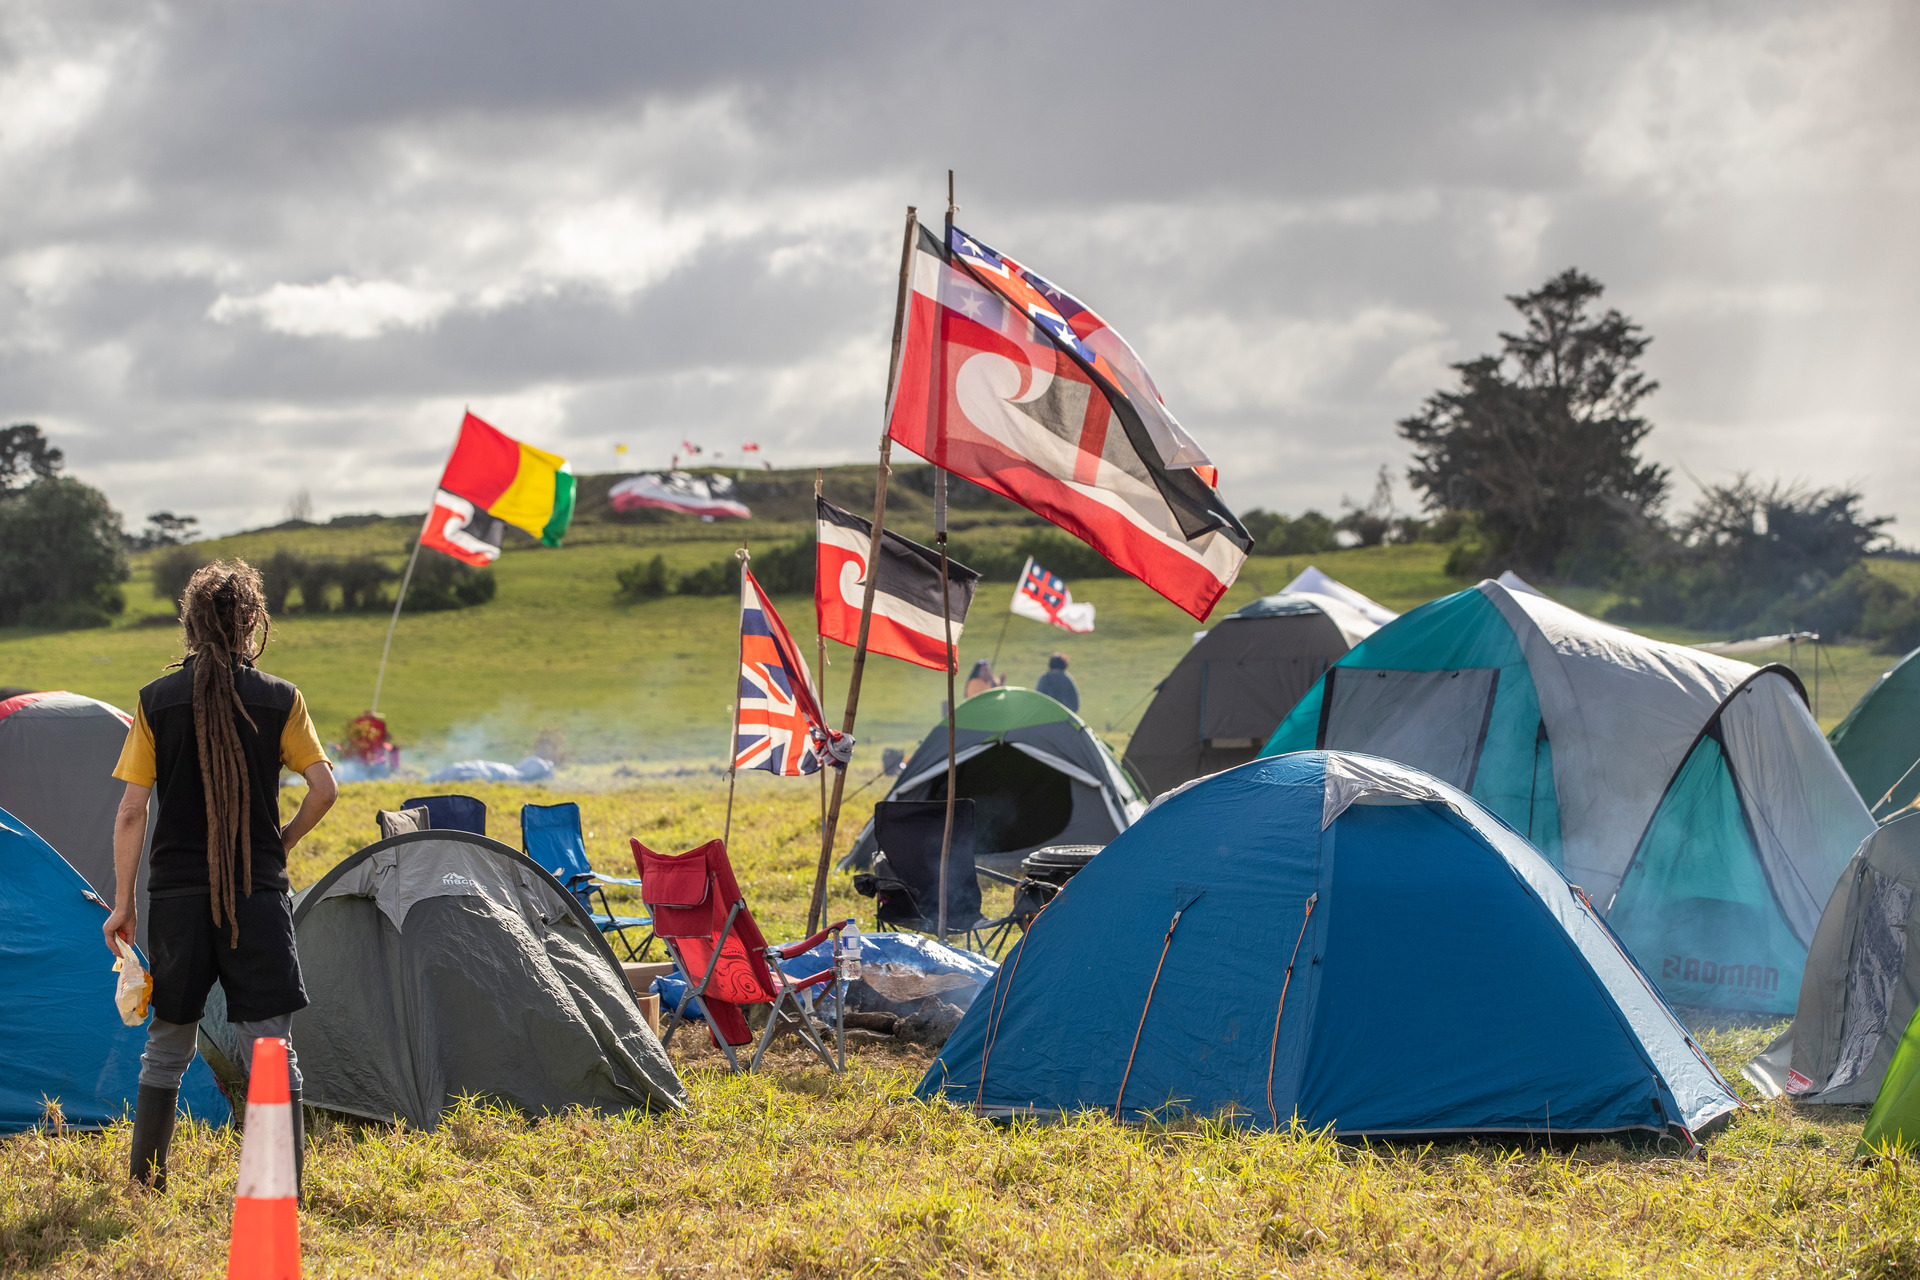 Mana whenua reach decision on Ihumātao land